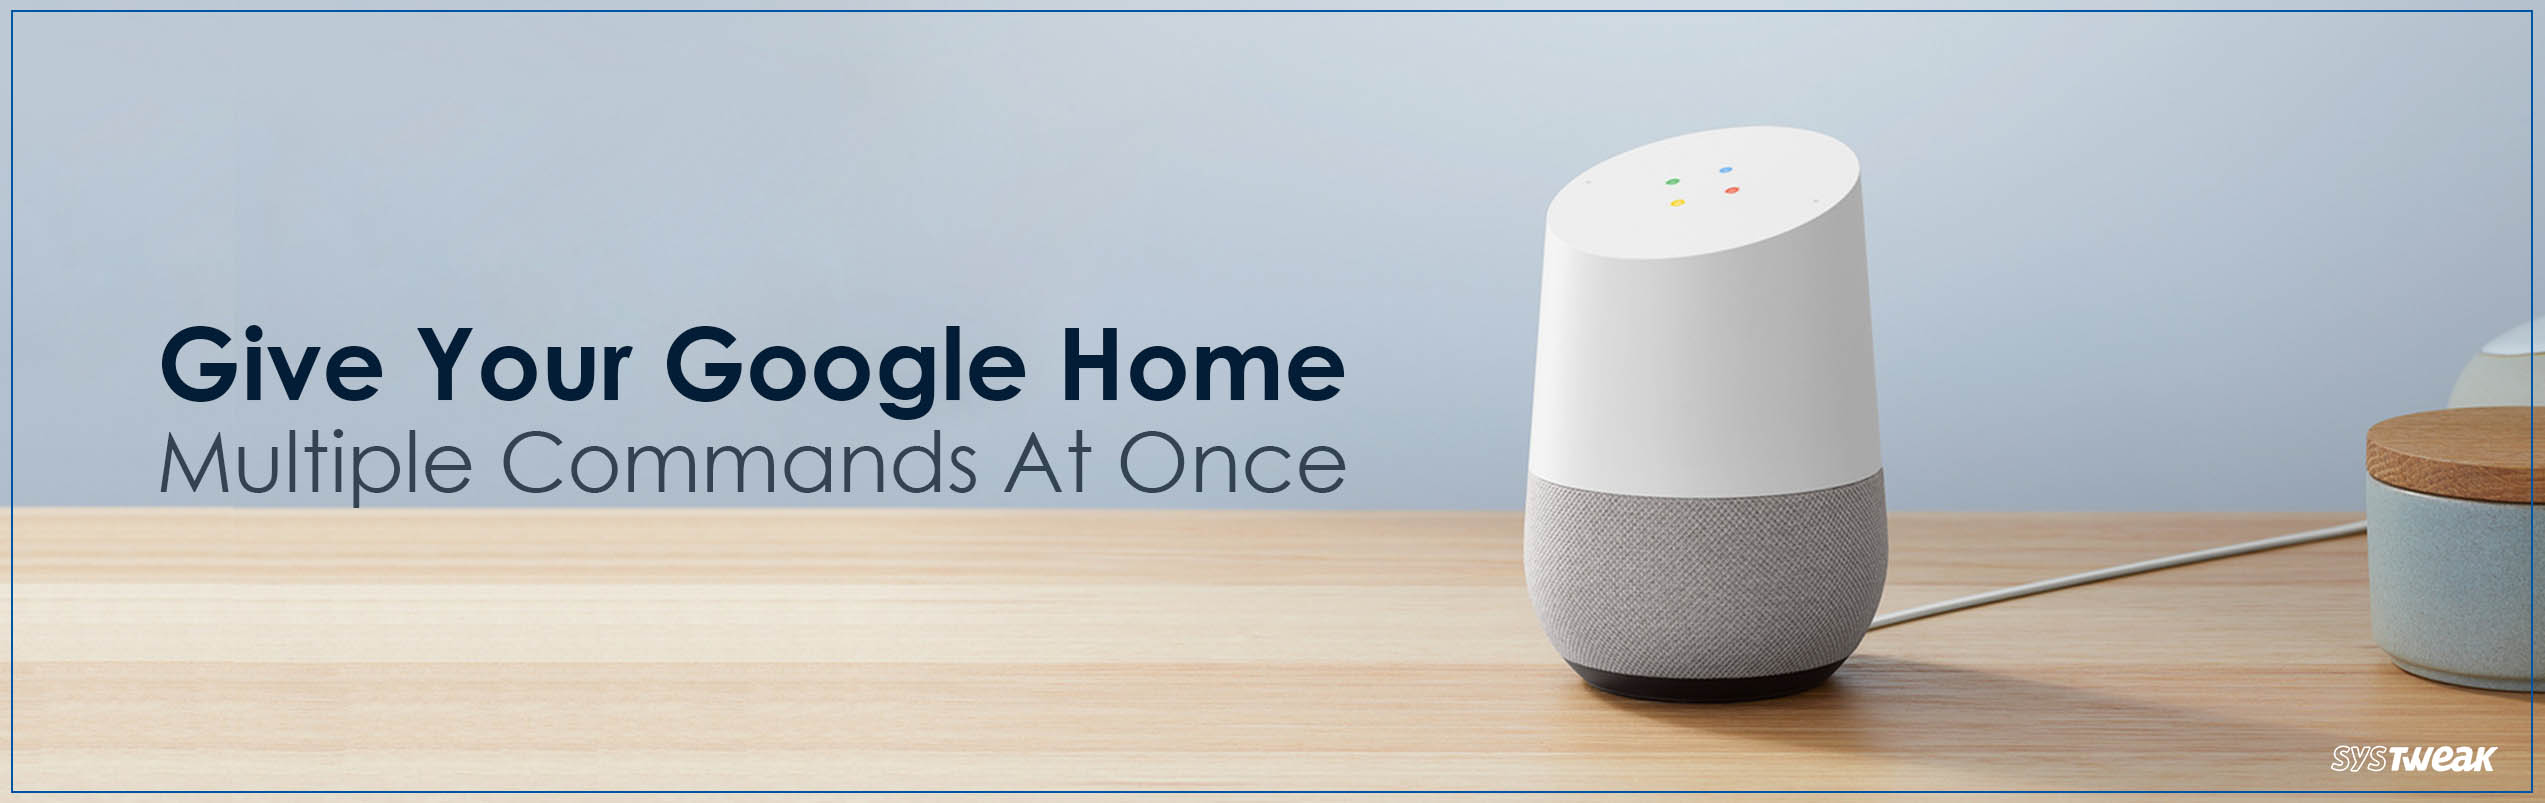 Ask Multiple Queries From Google Home At Once